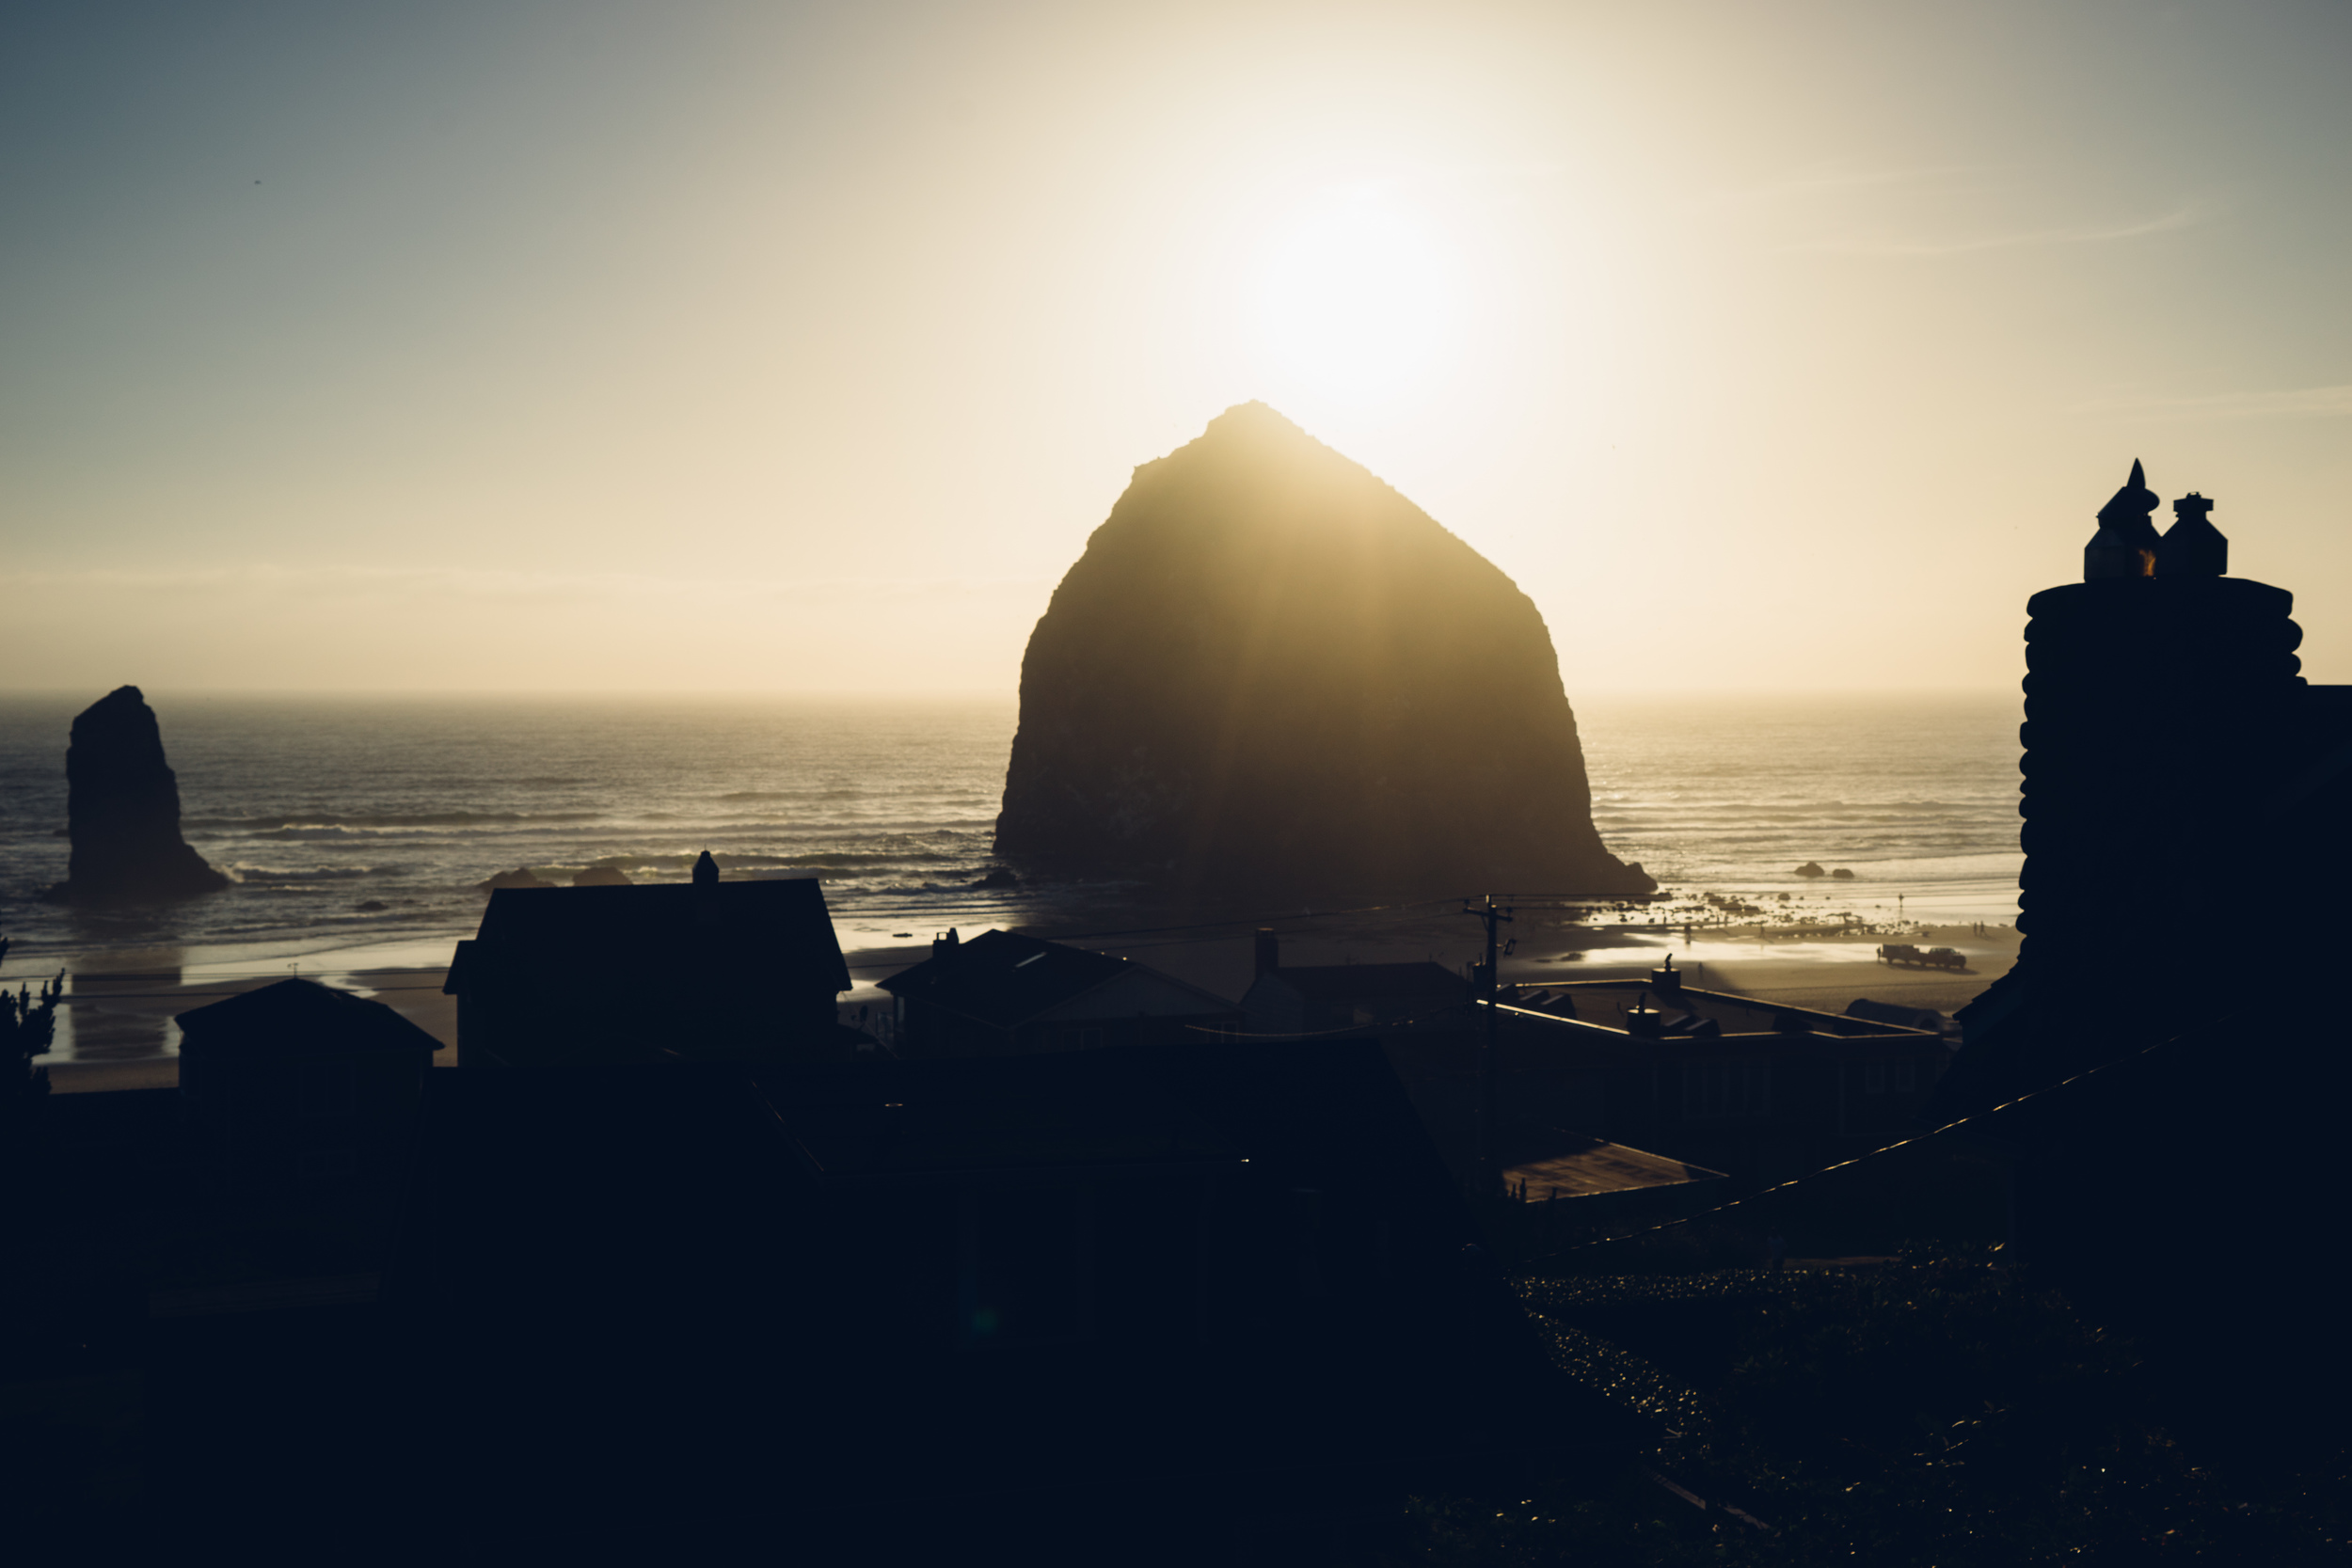 This is our first glimpse of the  Haystack Rock  as we drove pass it. Simply breathtaking.